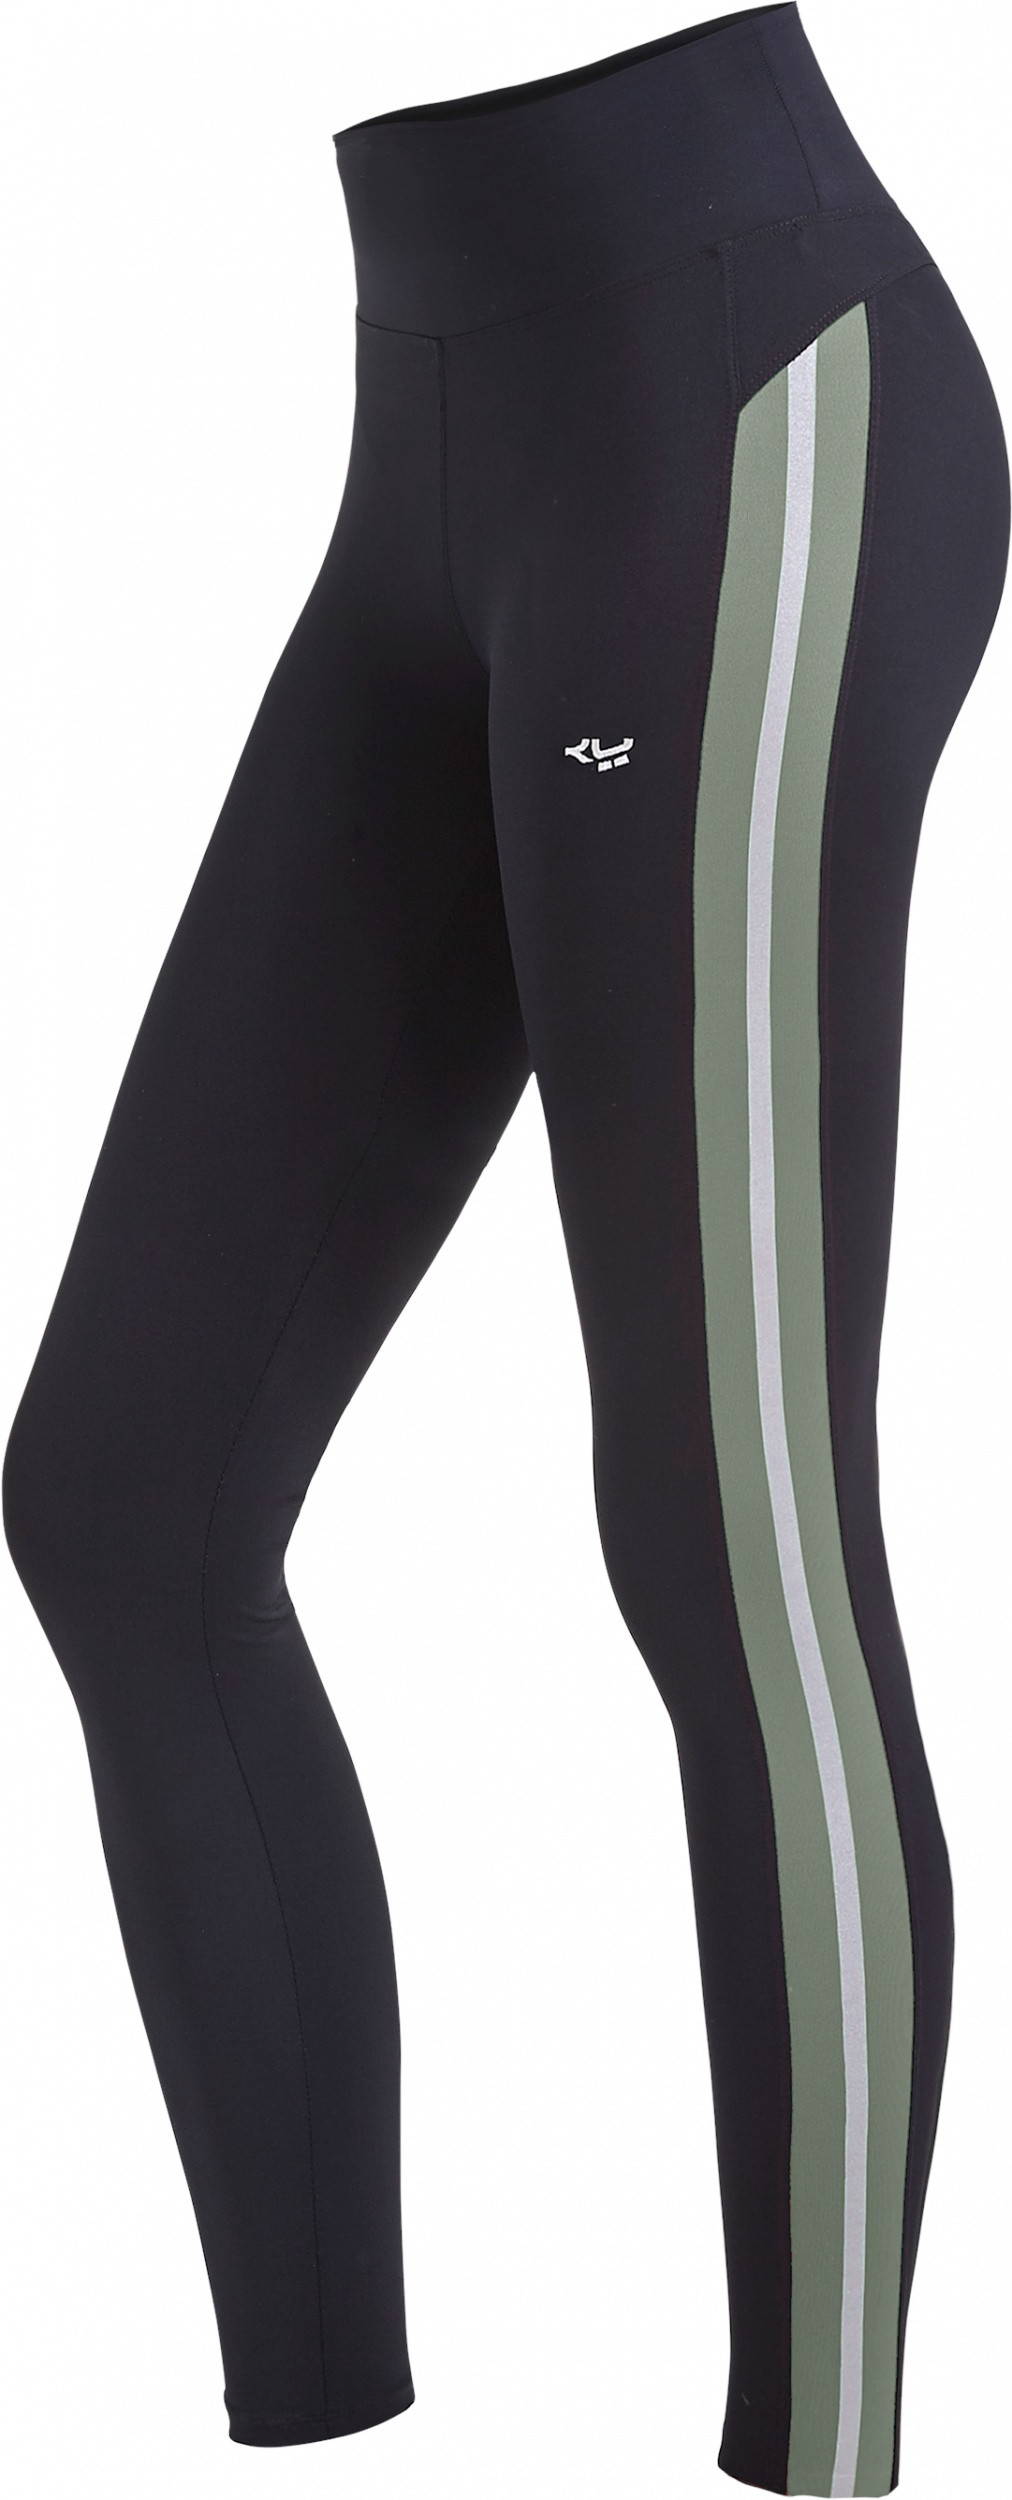 Shaping Sportlegging.Rohnisch Sportlegging Shape Dames Zwart Legergroen Internet